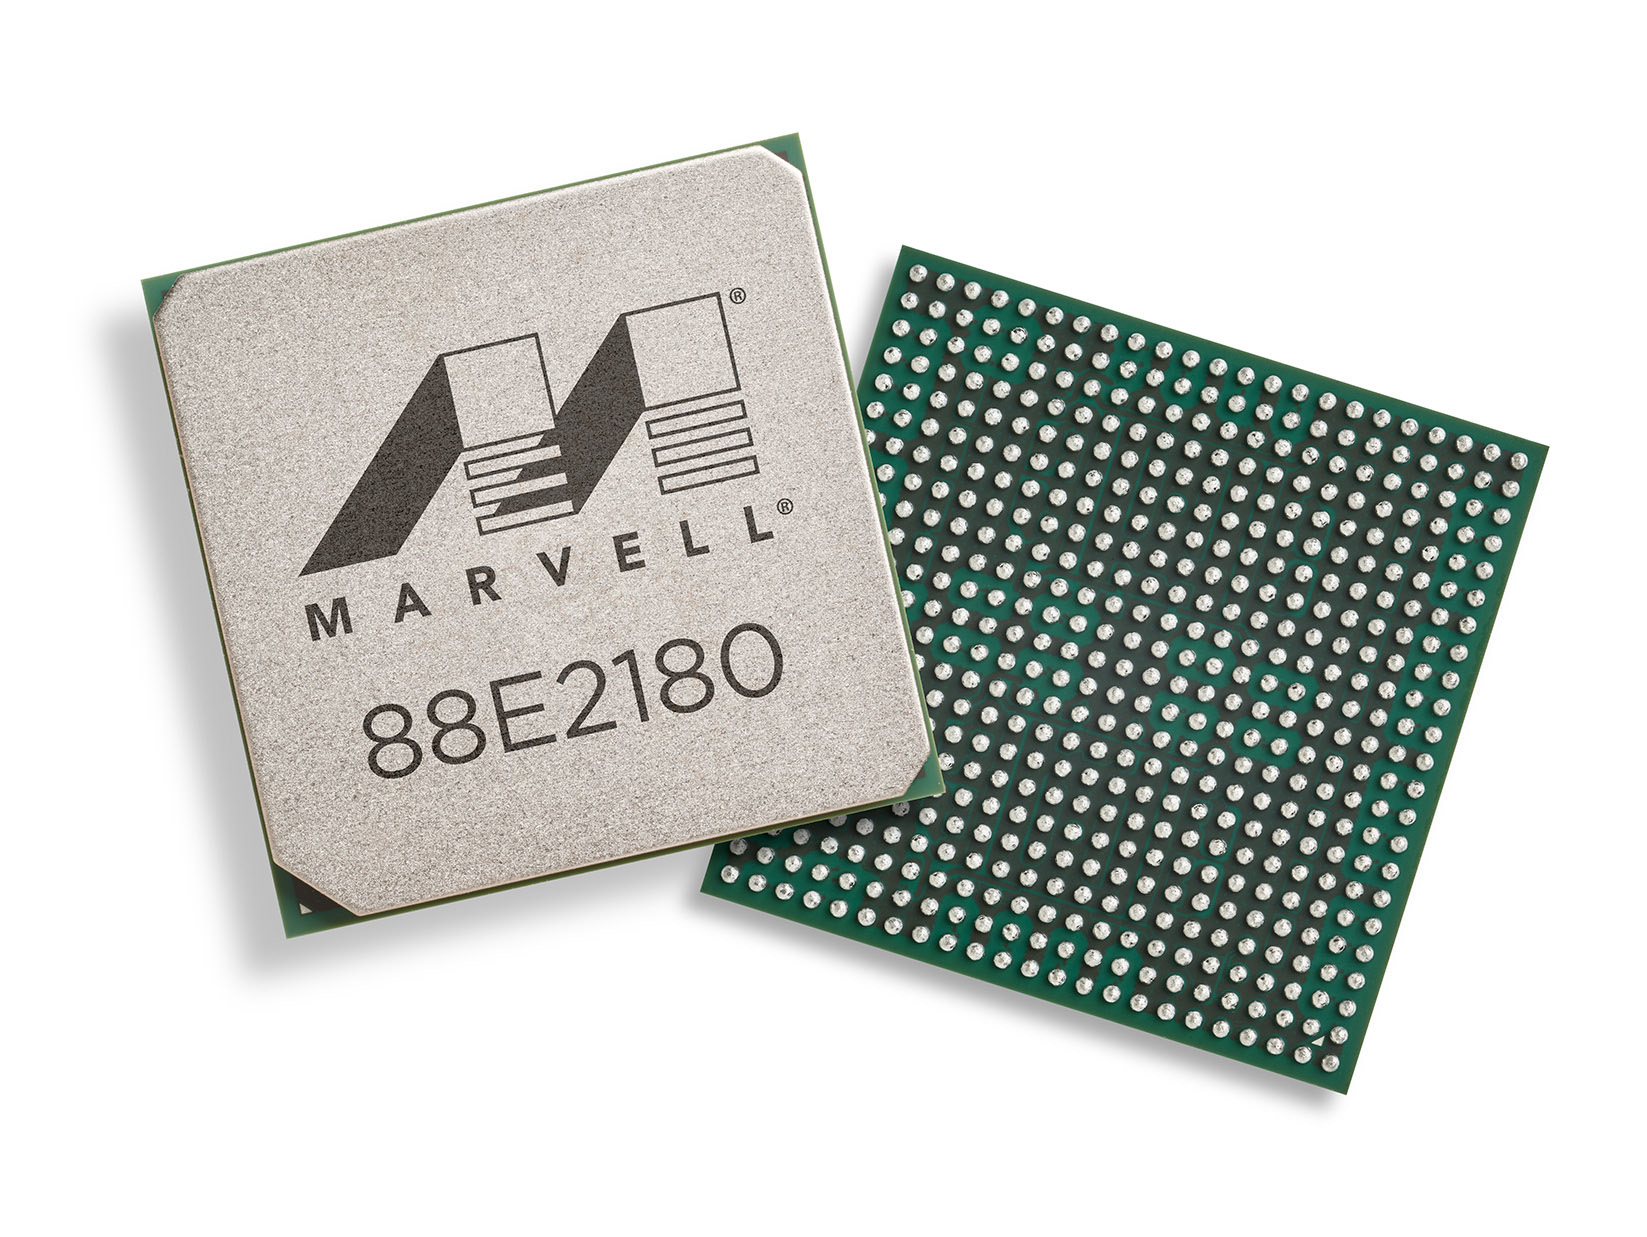 Marvell's Alaska® M 88E2180 Gigabit Ethernet Transceiver